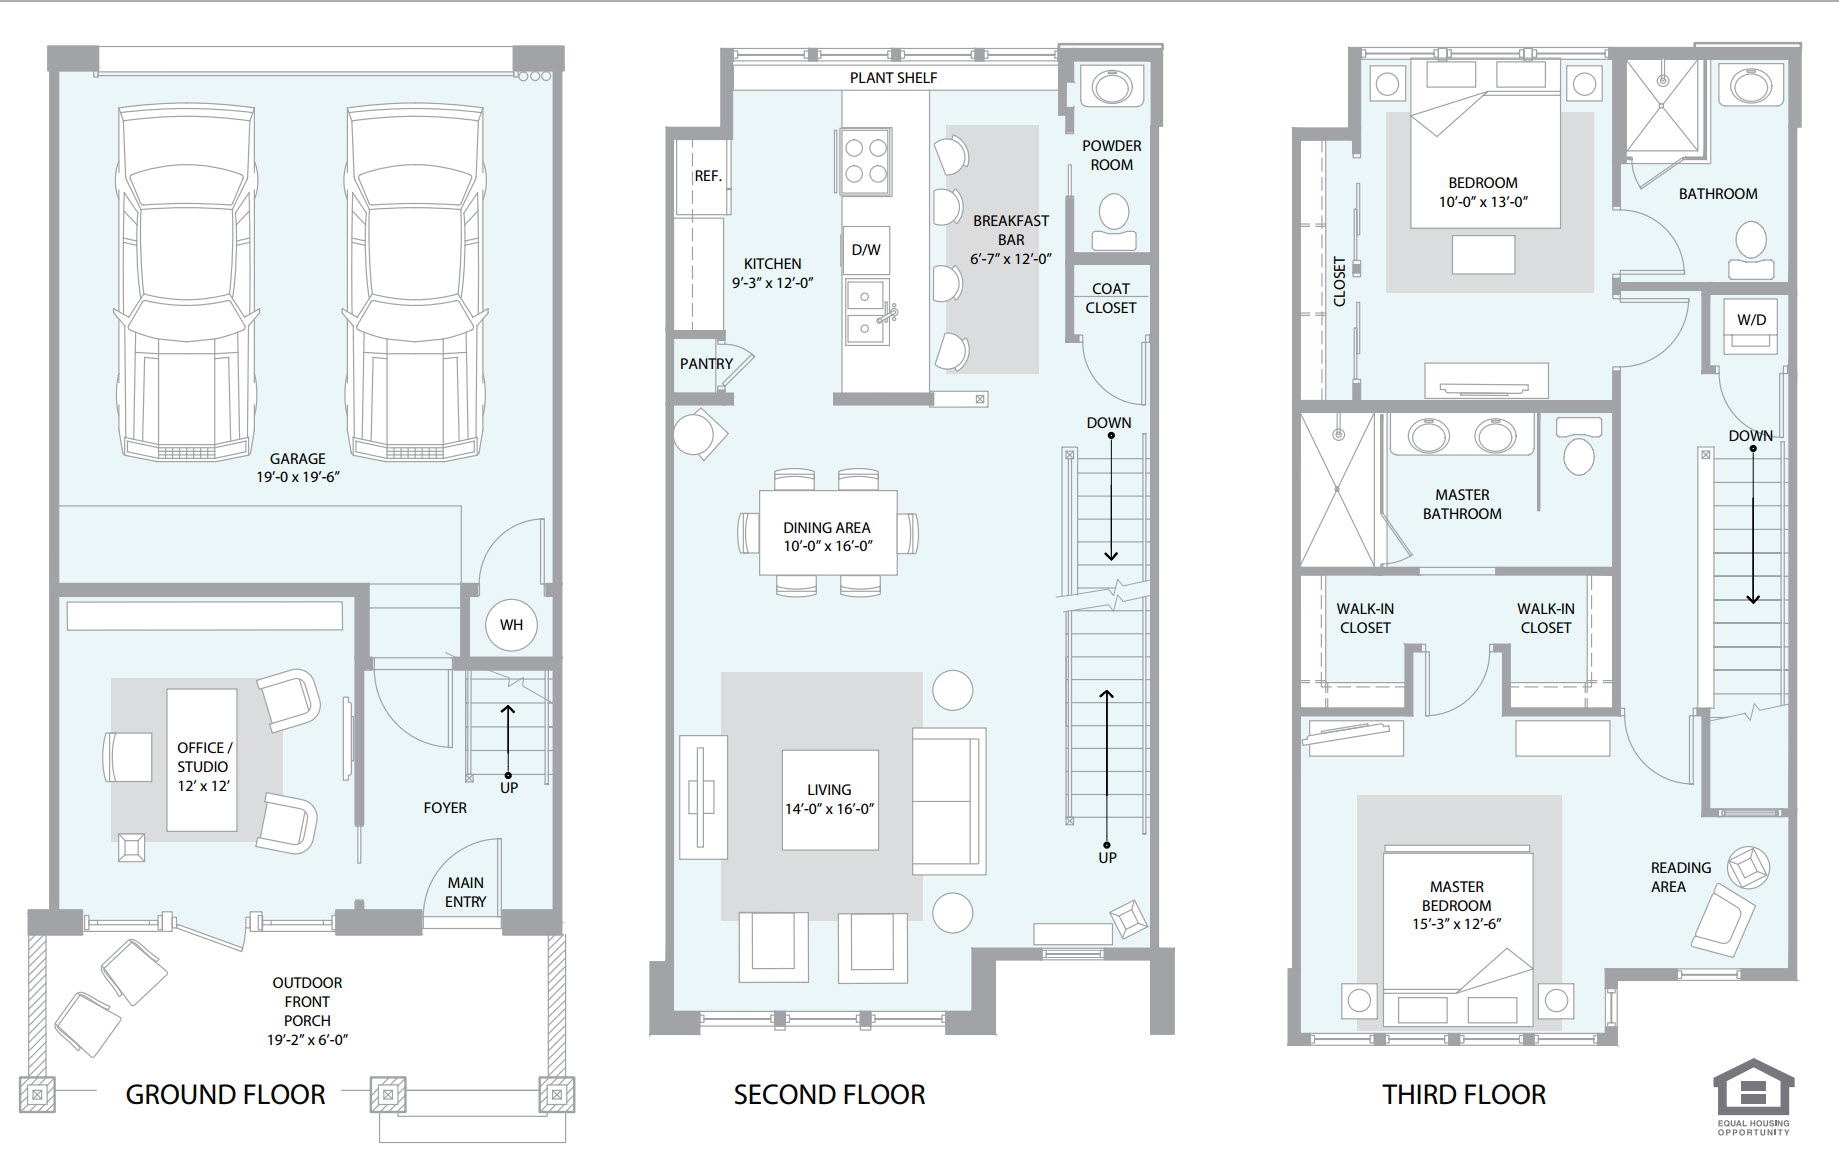 Townhomes on 3rd condos for sale rent phoenix az for Townhome layouts